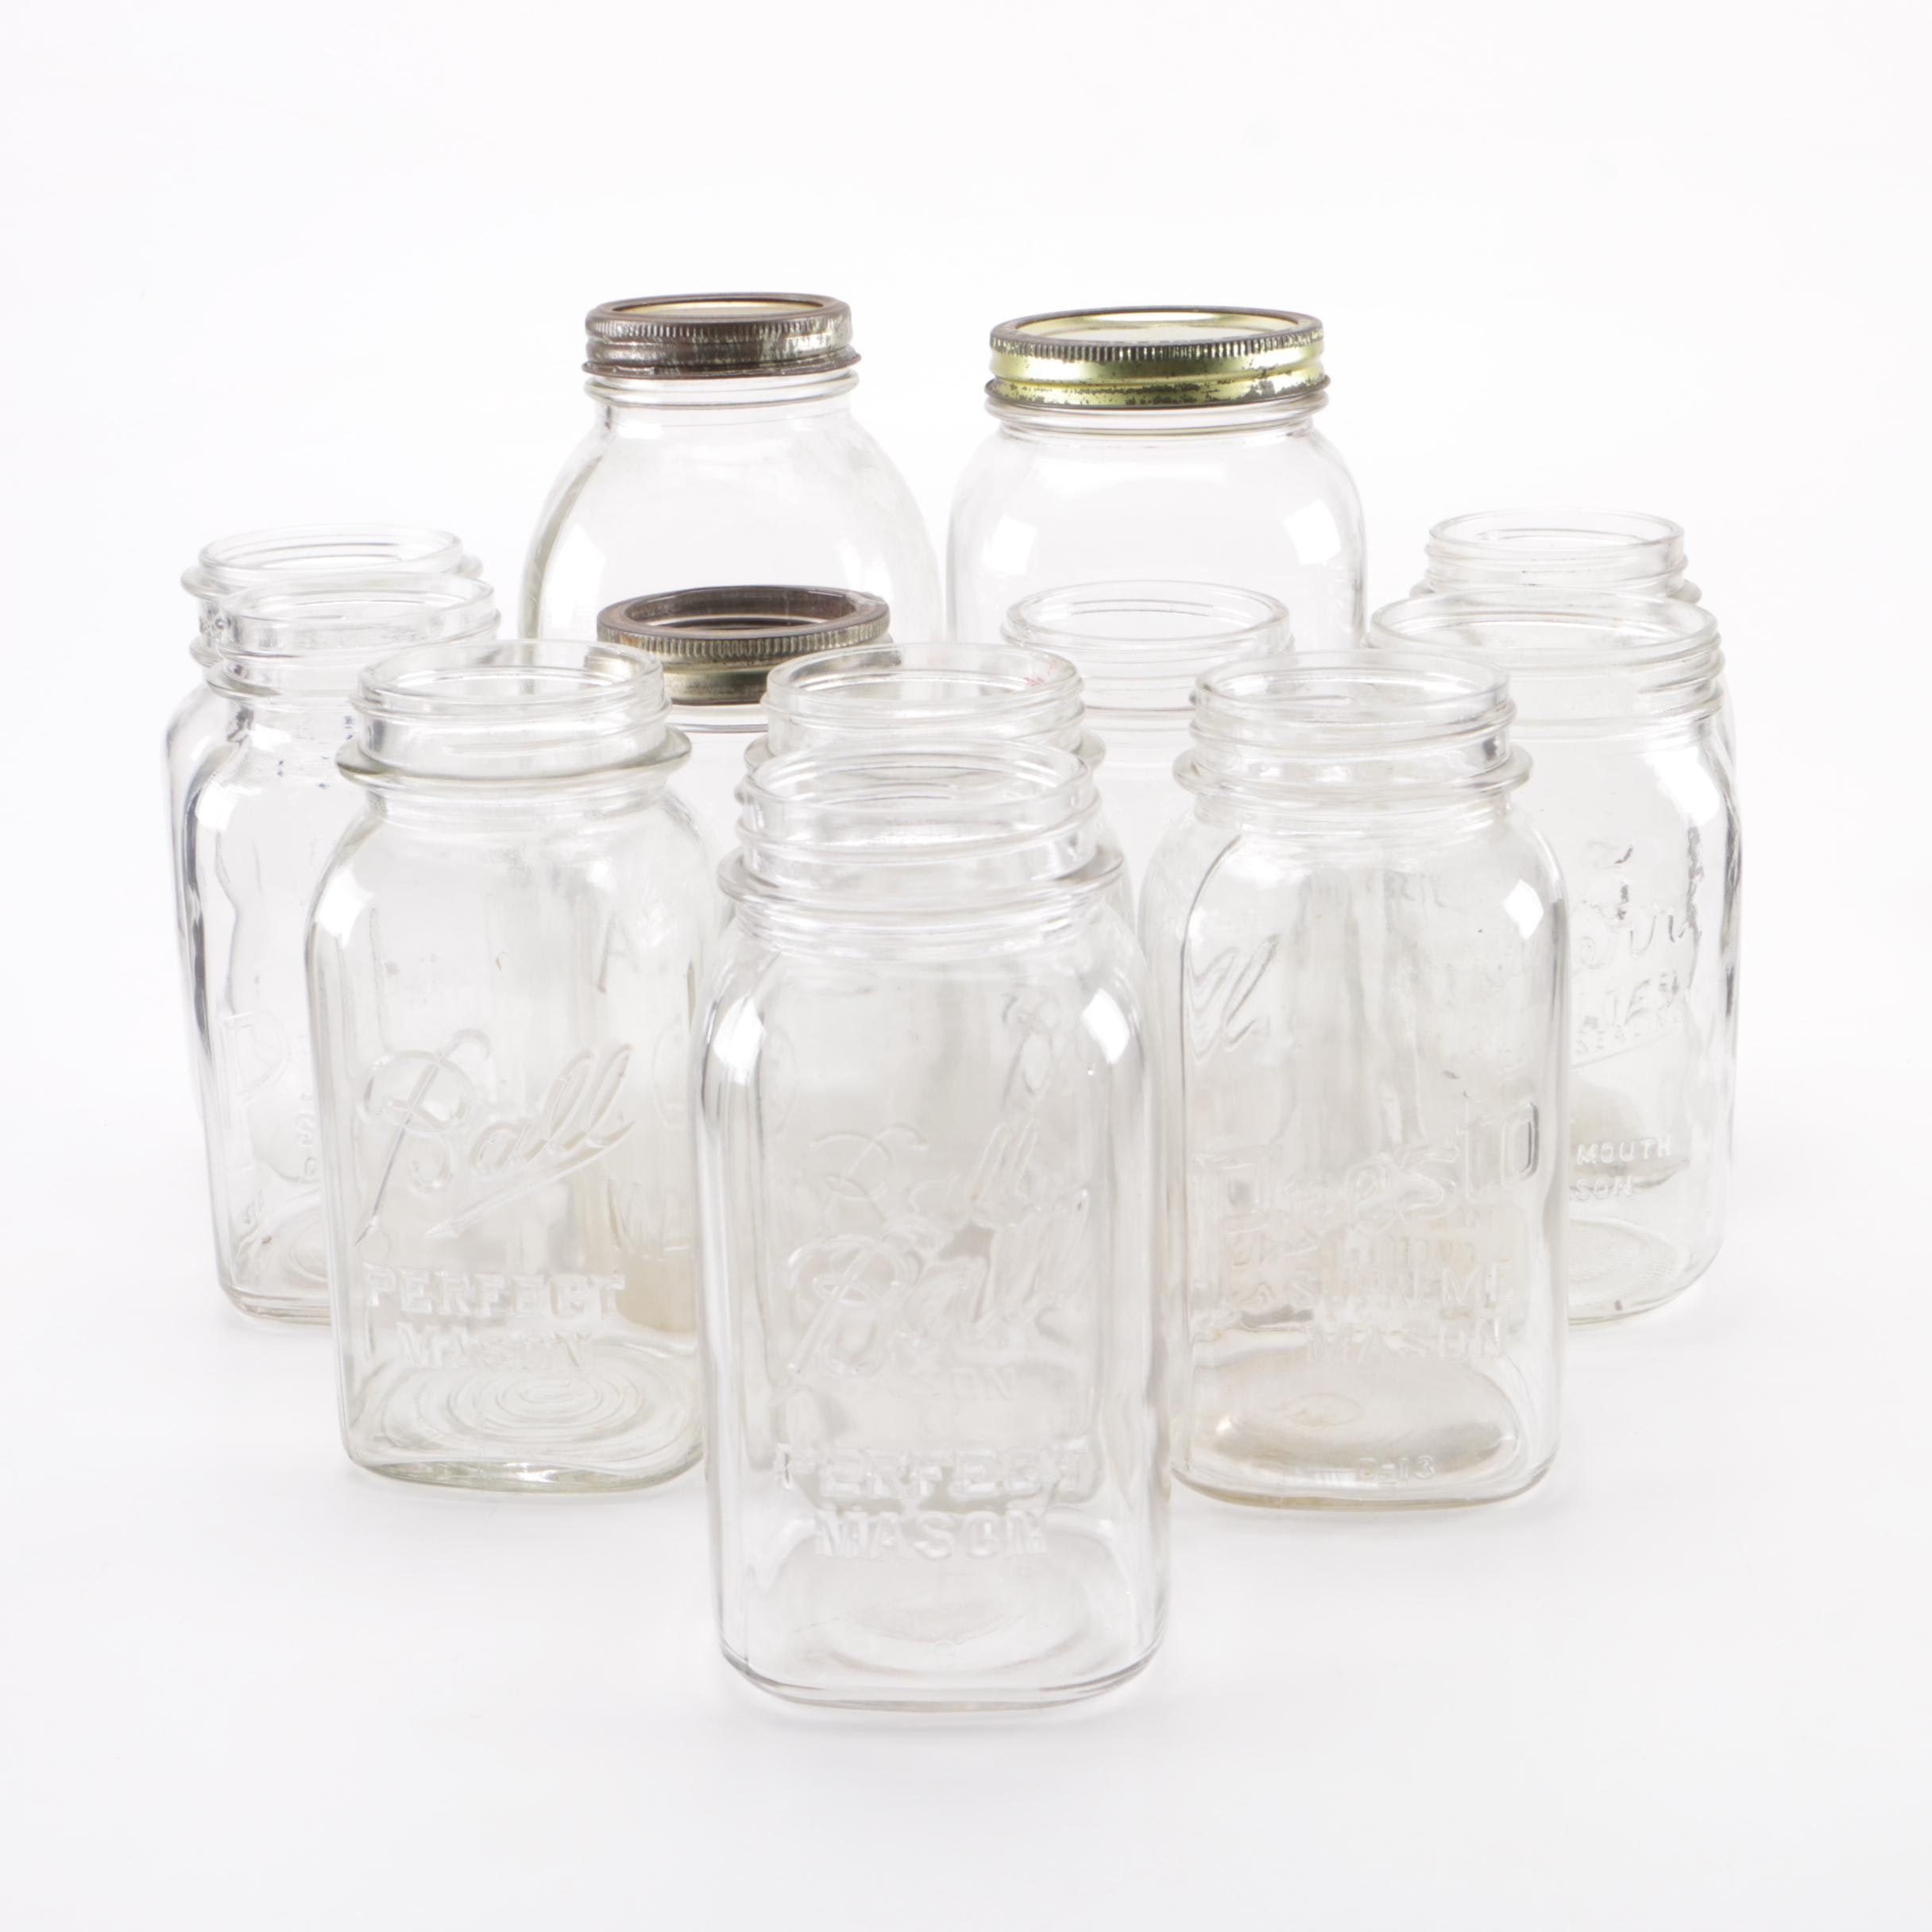 Glass Mason Jar Collection